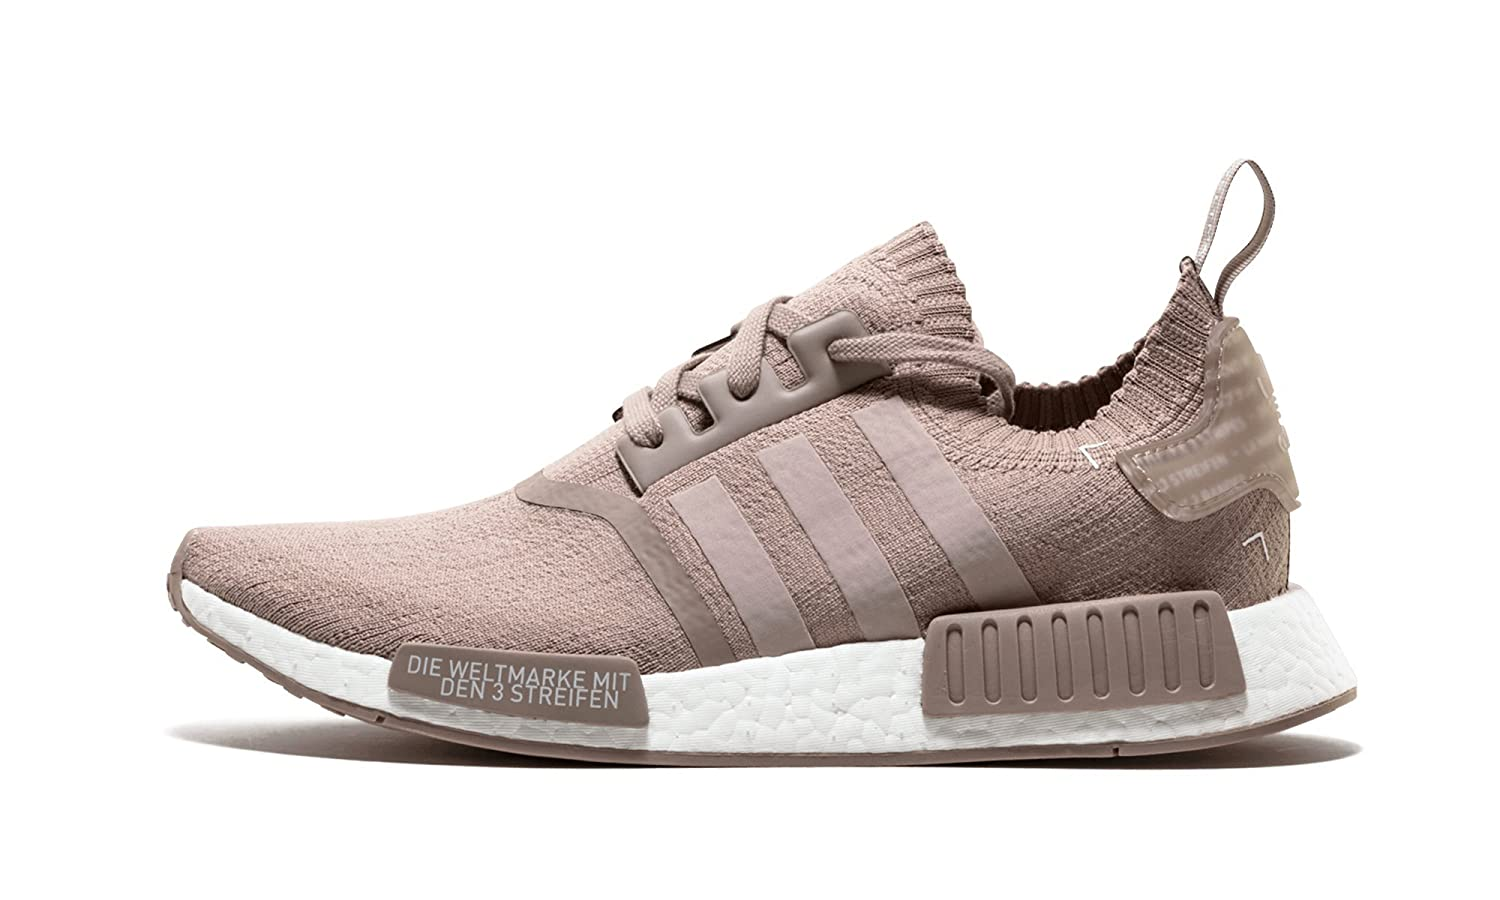 Adidas NMD R1 TRICOLOR Primeknit DS sz 8 for sale in Millbrae, CA